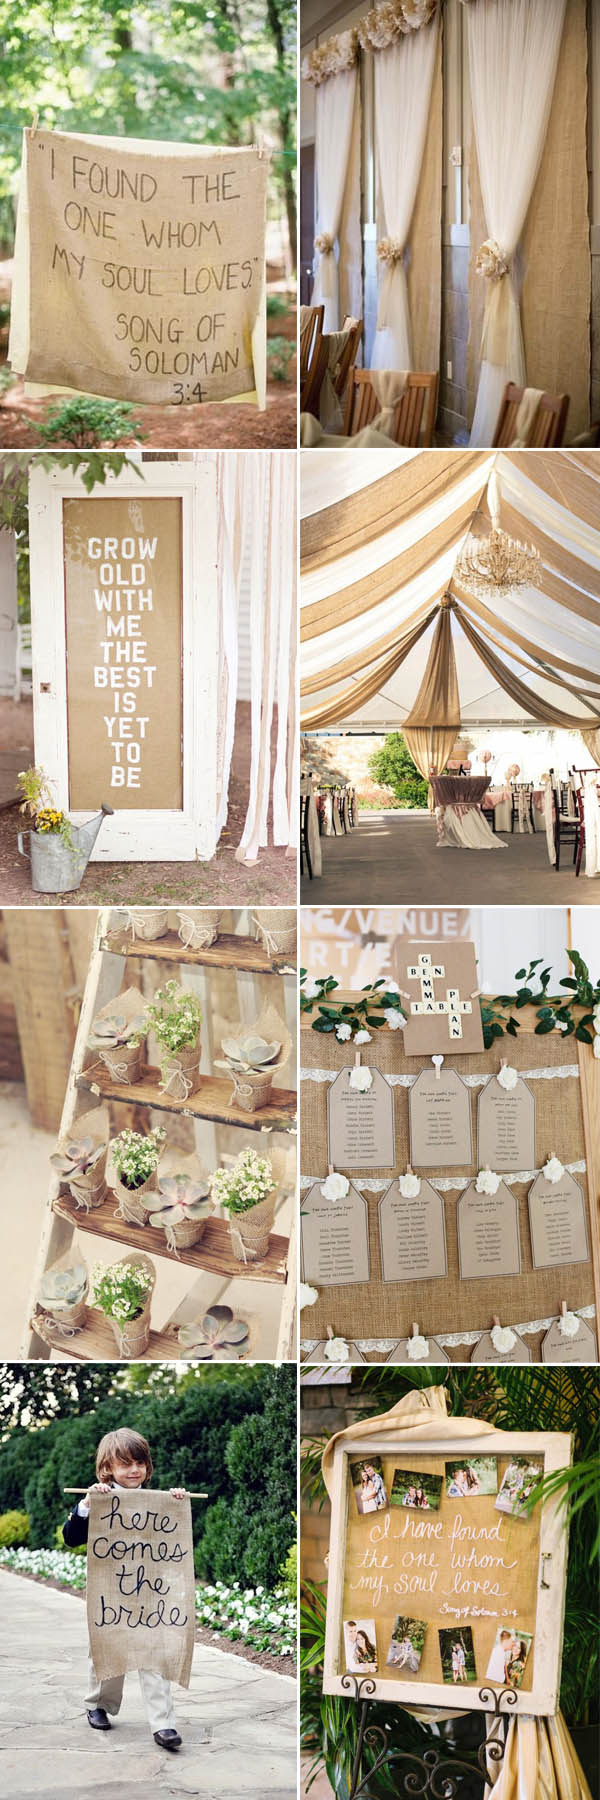 Cheap Rustic Wedding Decor The Most Complete Burlap Rustic Wedding Ideas For Your Inspiration